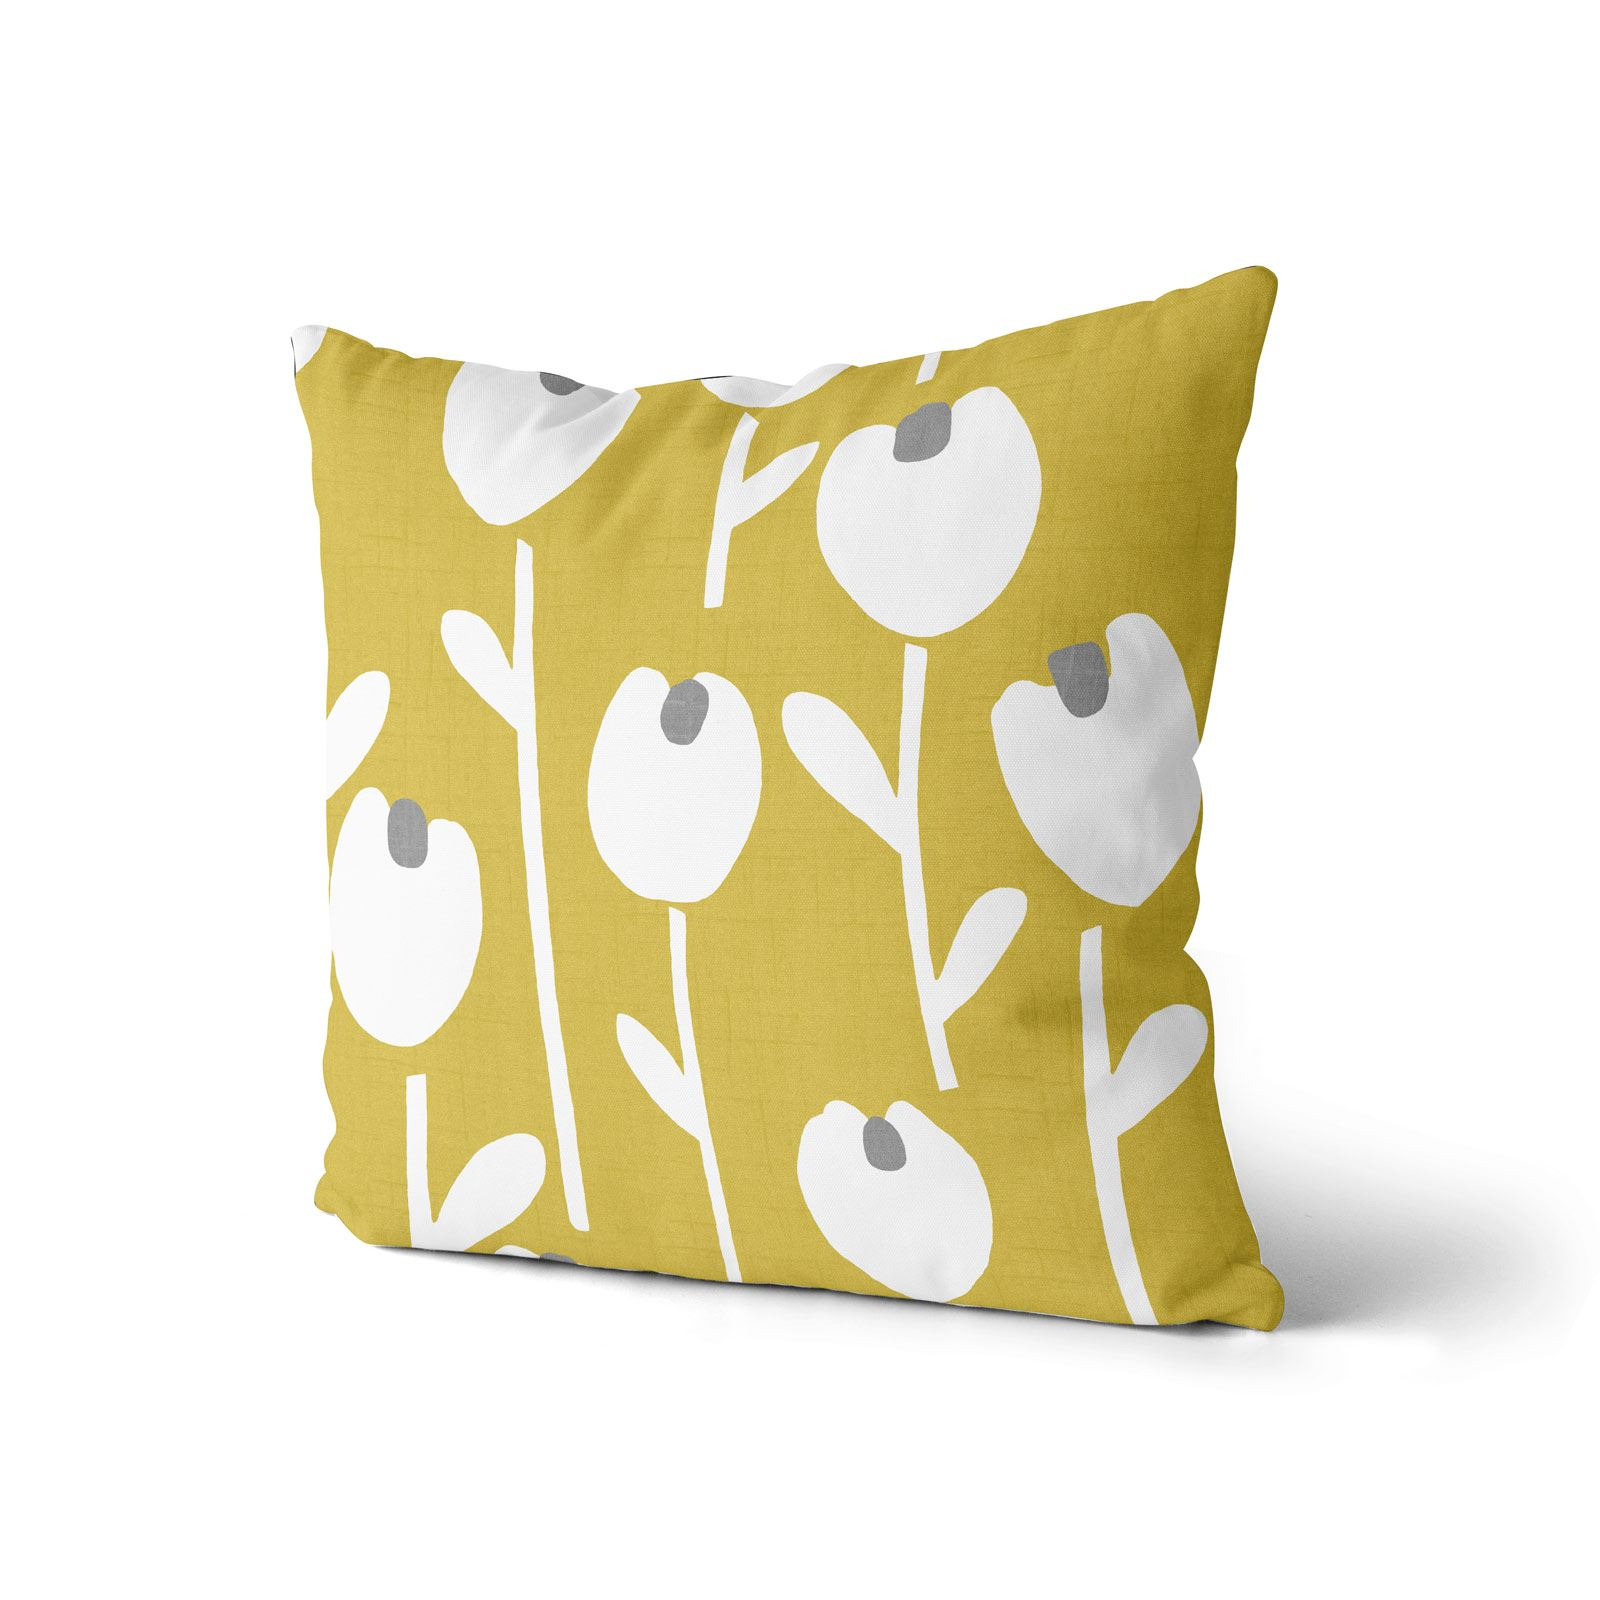 Grey-Ochre-Mustard-Cushion-Cover-Collection-17-034-18-034-Covers-Filled-Cushions thumbnail 11